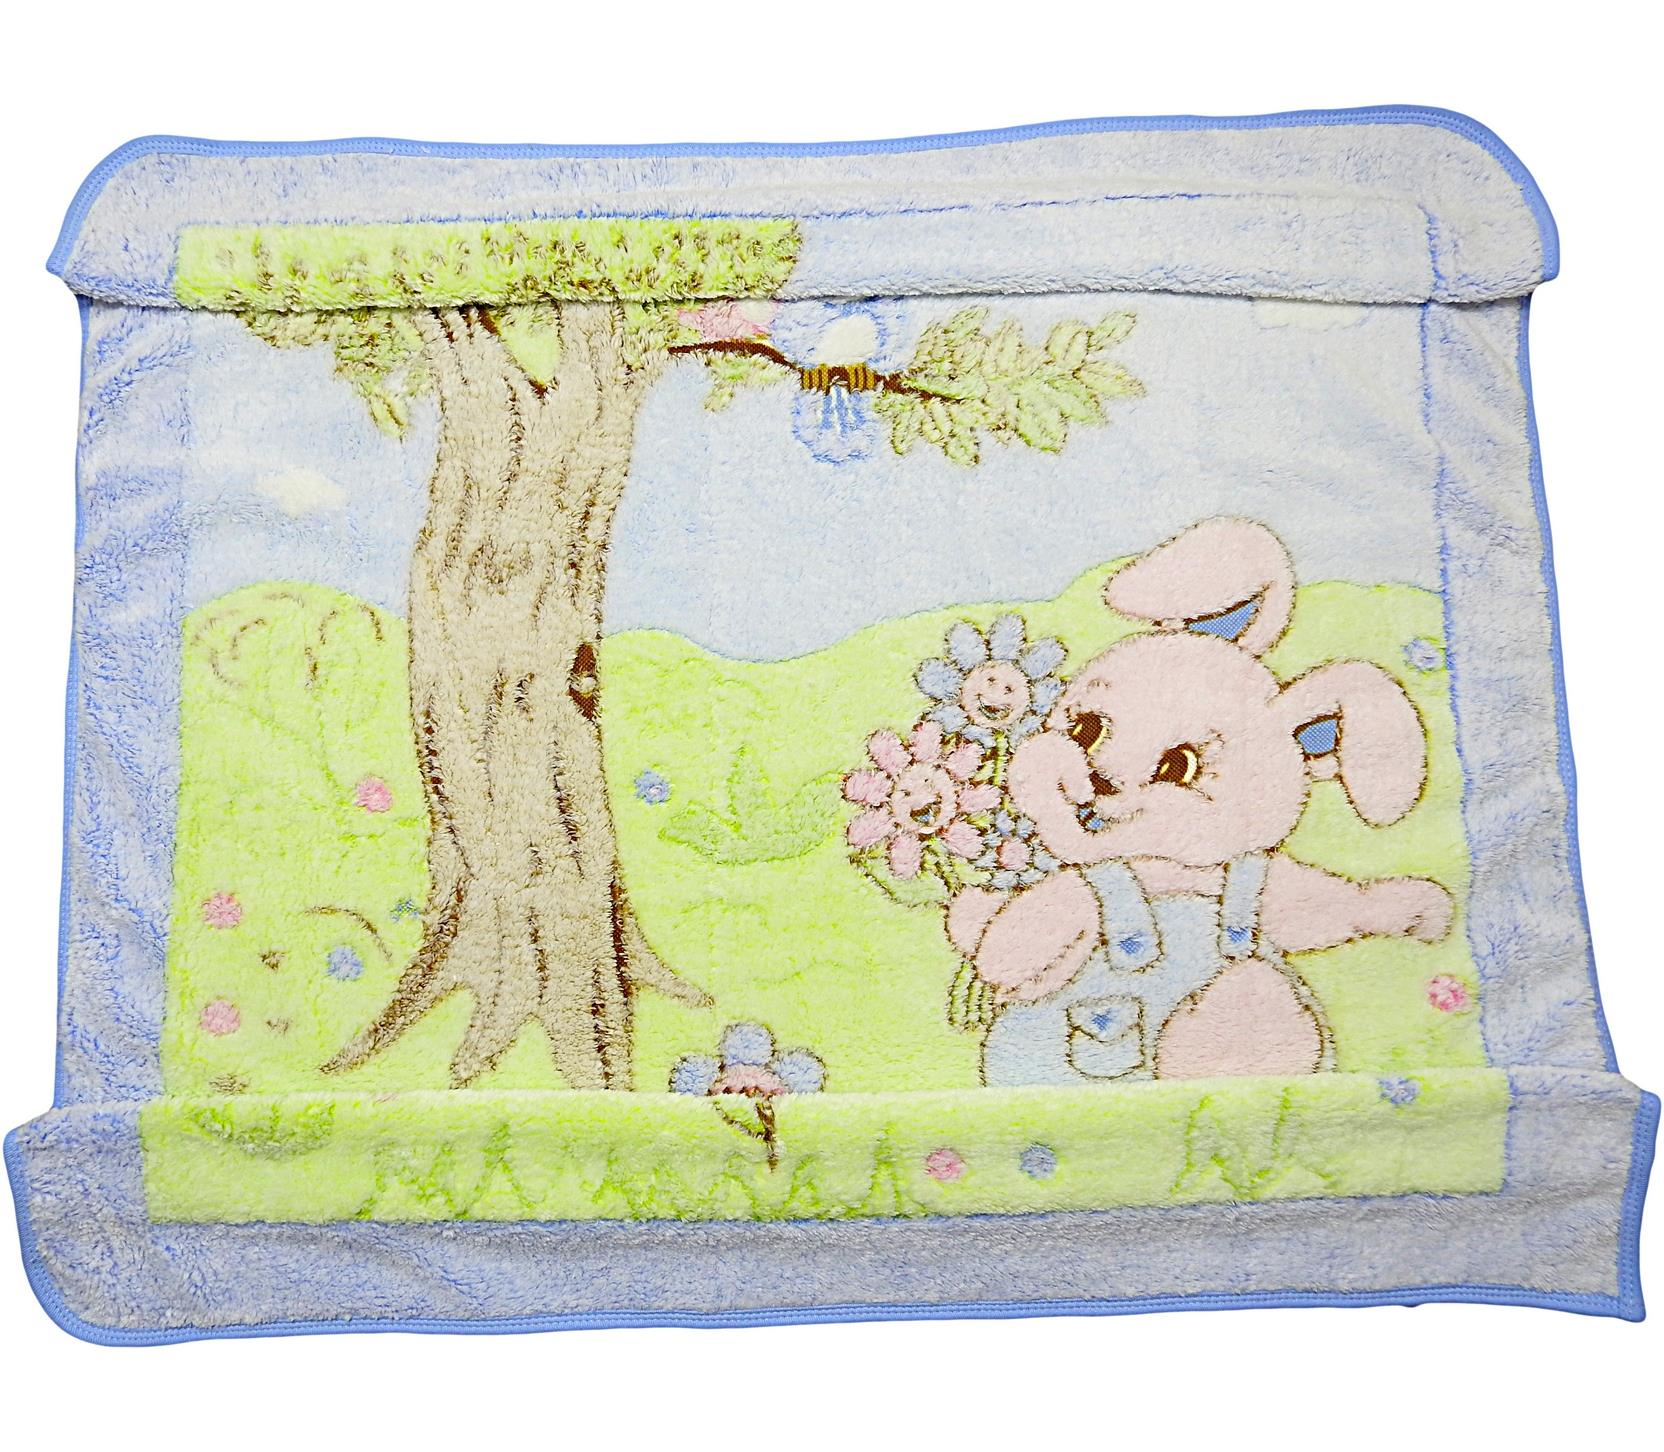 Wholesale quality and cheap wellsoft fabric blanket